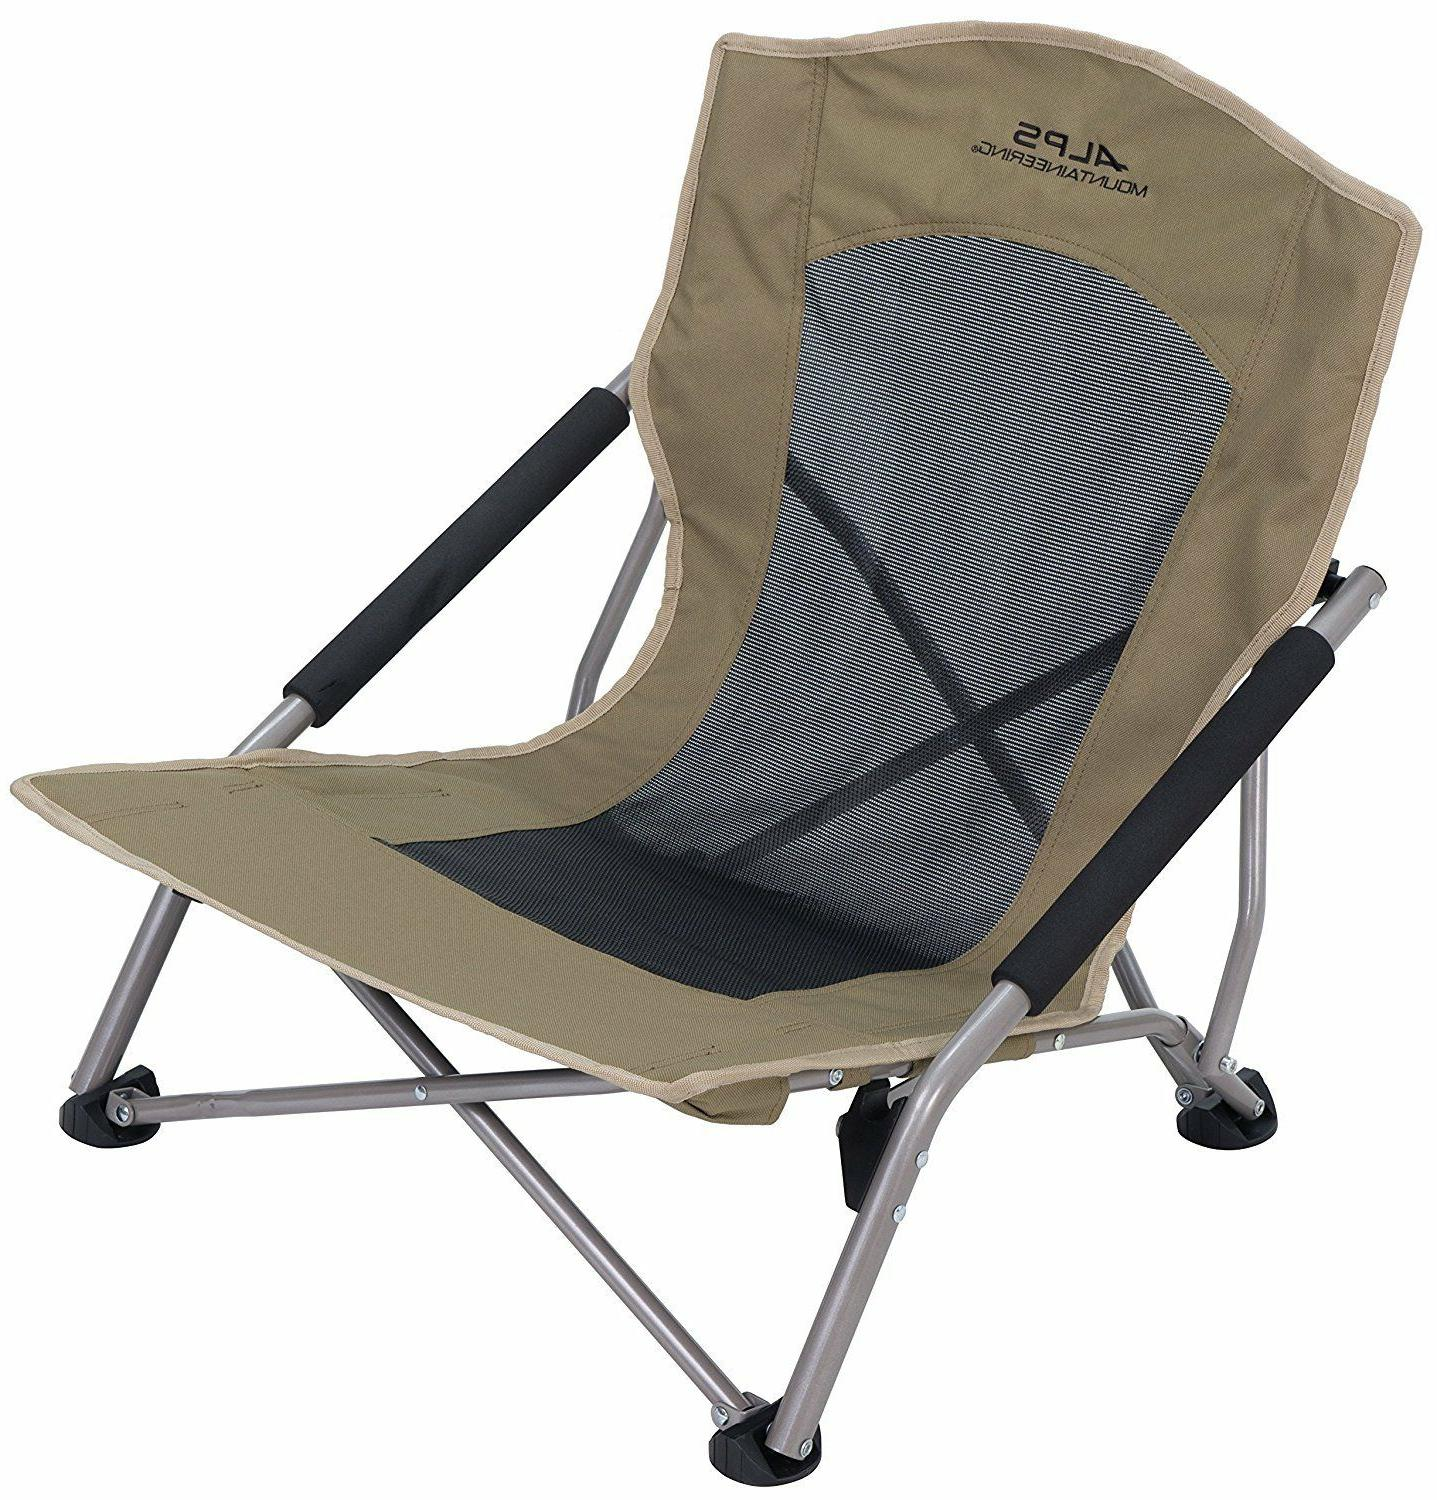 rendezvous folding chair camping outdoor sporting khaki